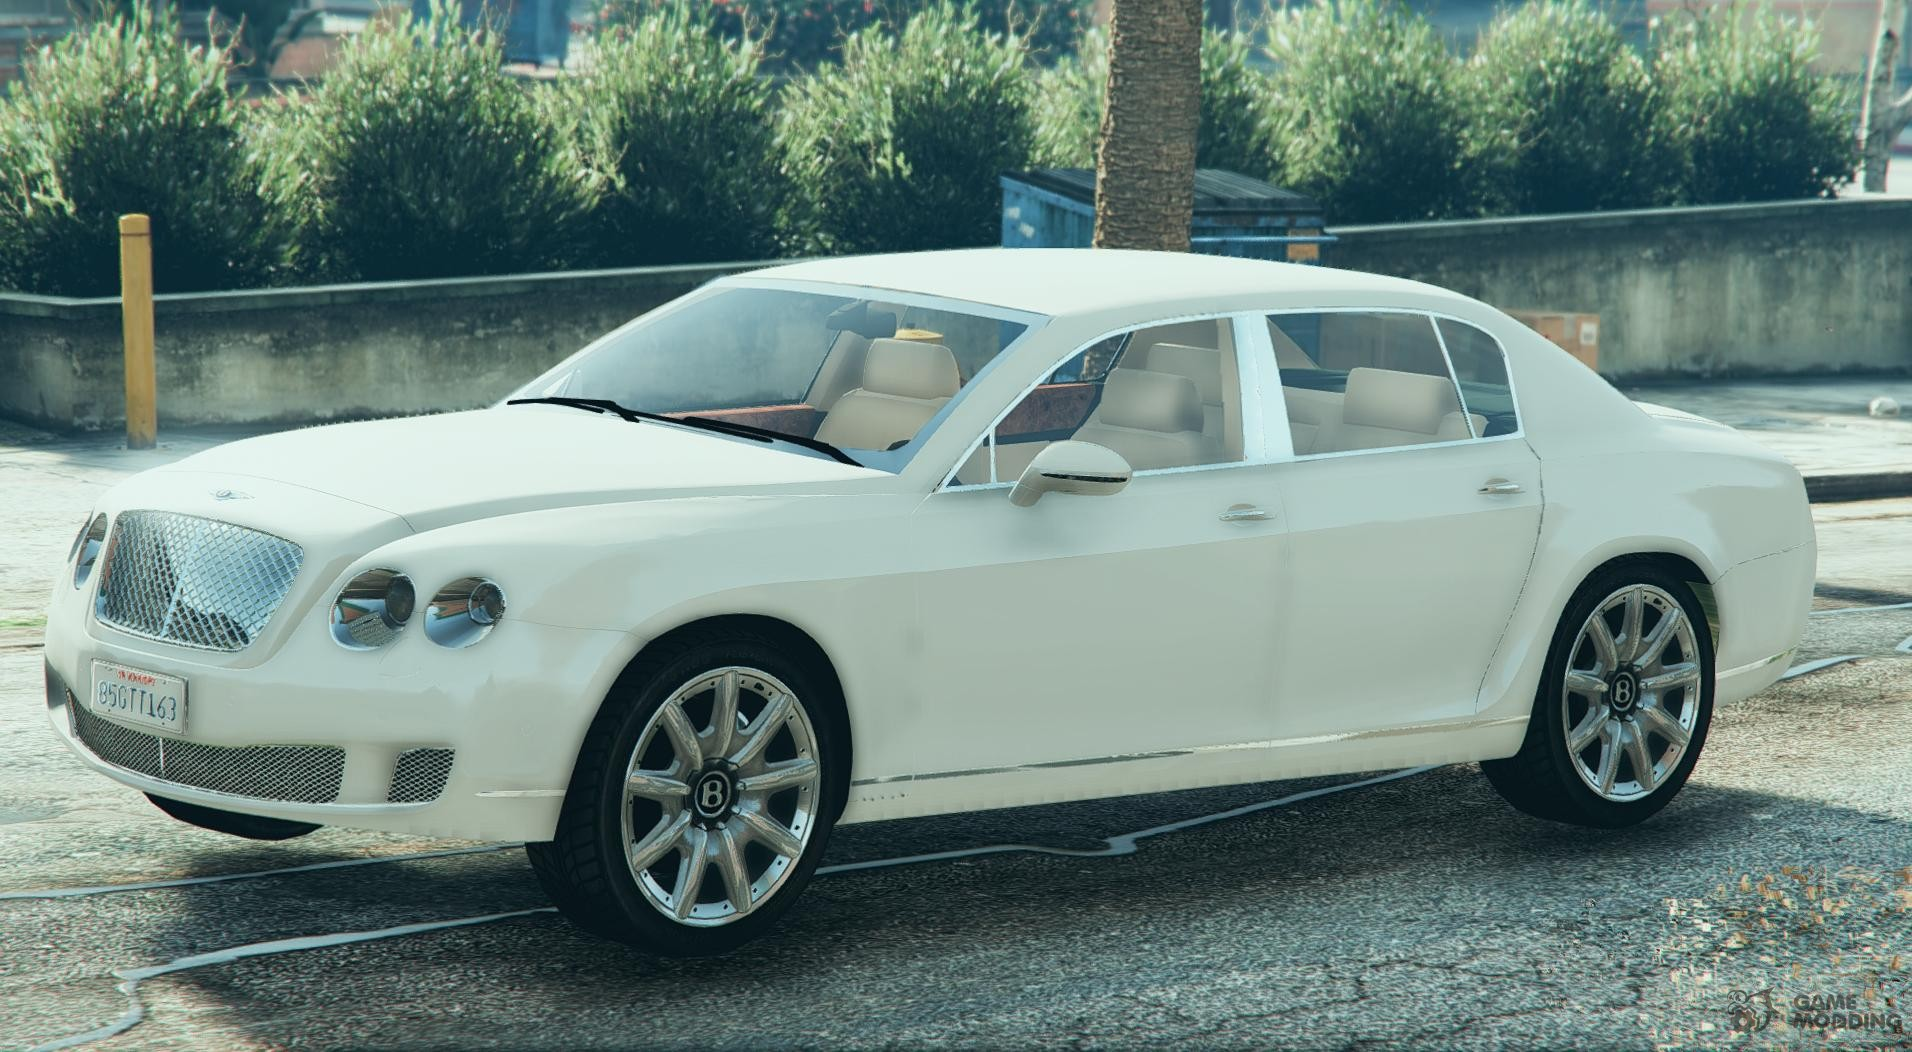 2010 bentley continental flying spur for gta 5 2010 bentley continental flying spur for gta 5 left view vanachro Choice Image